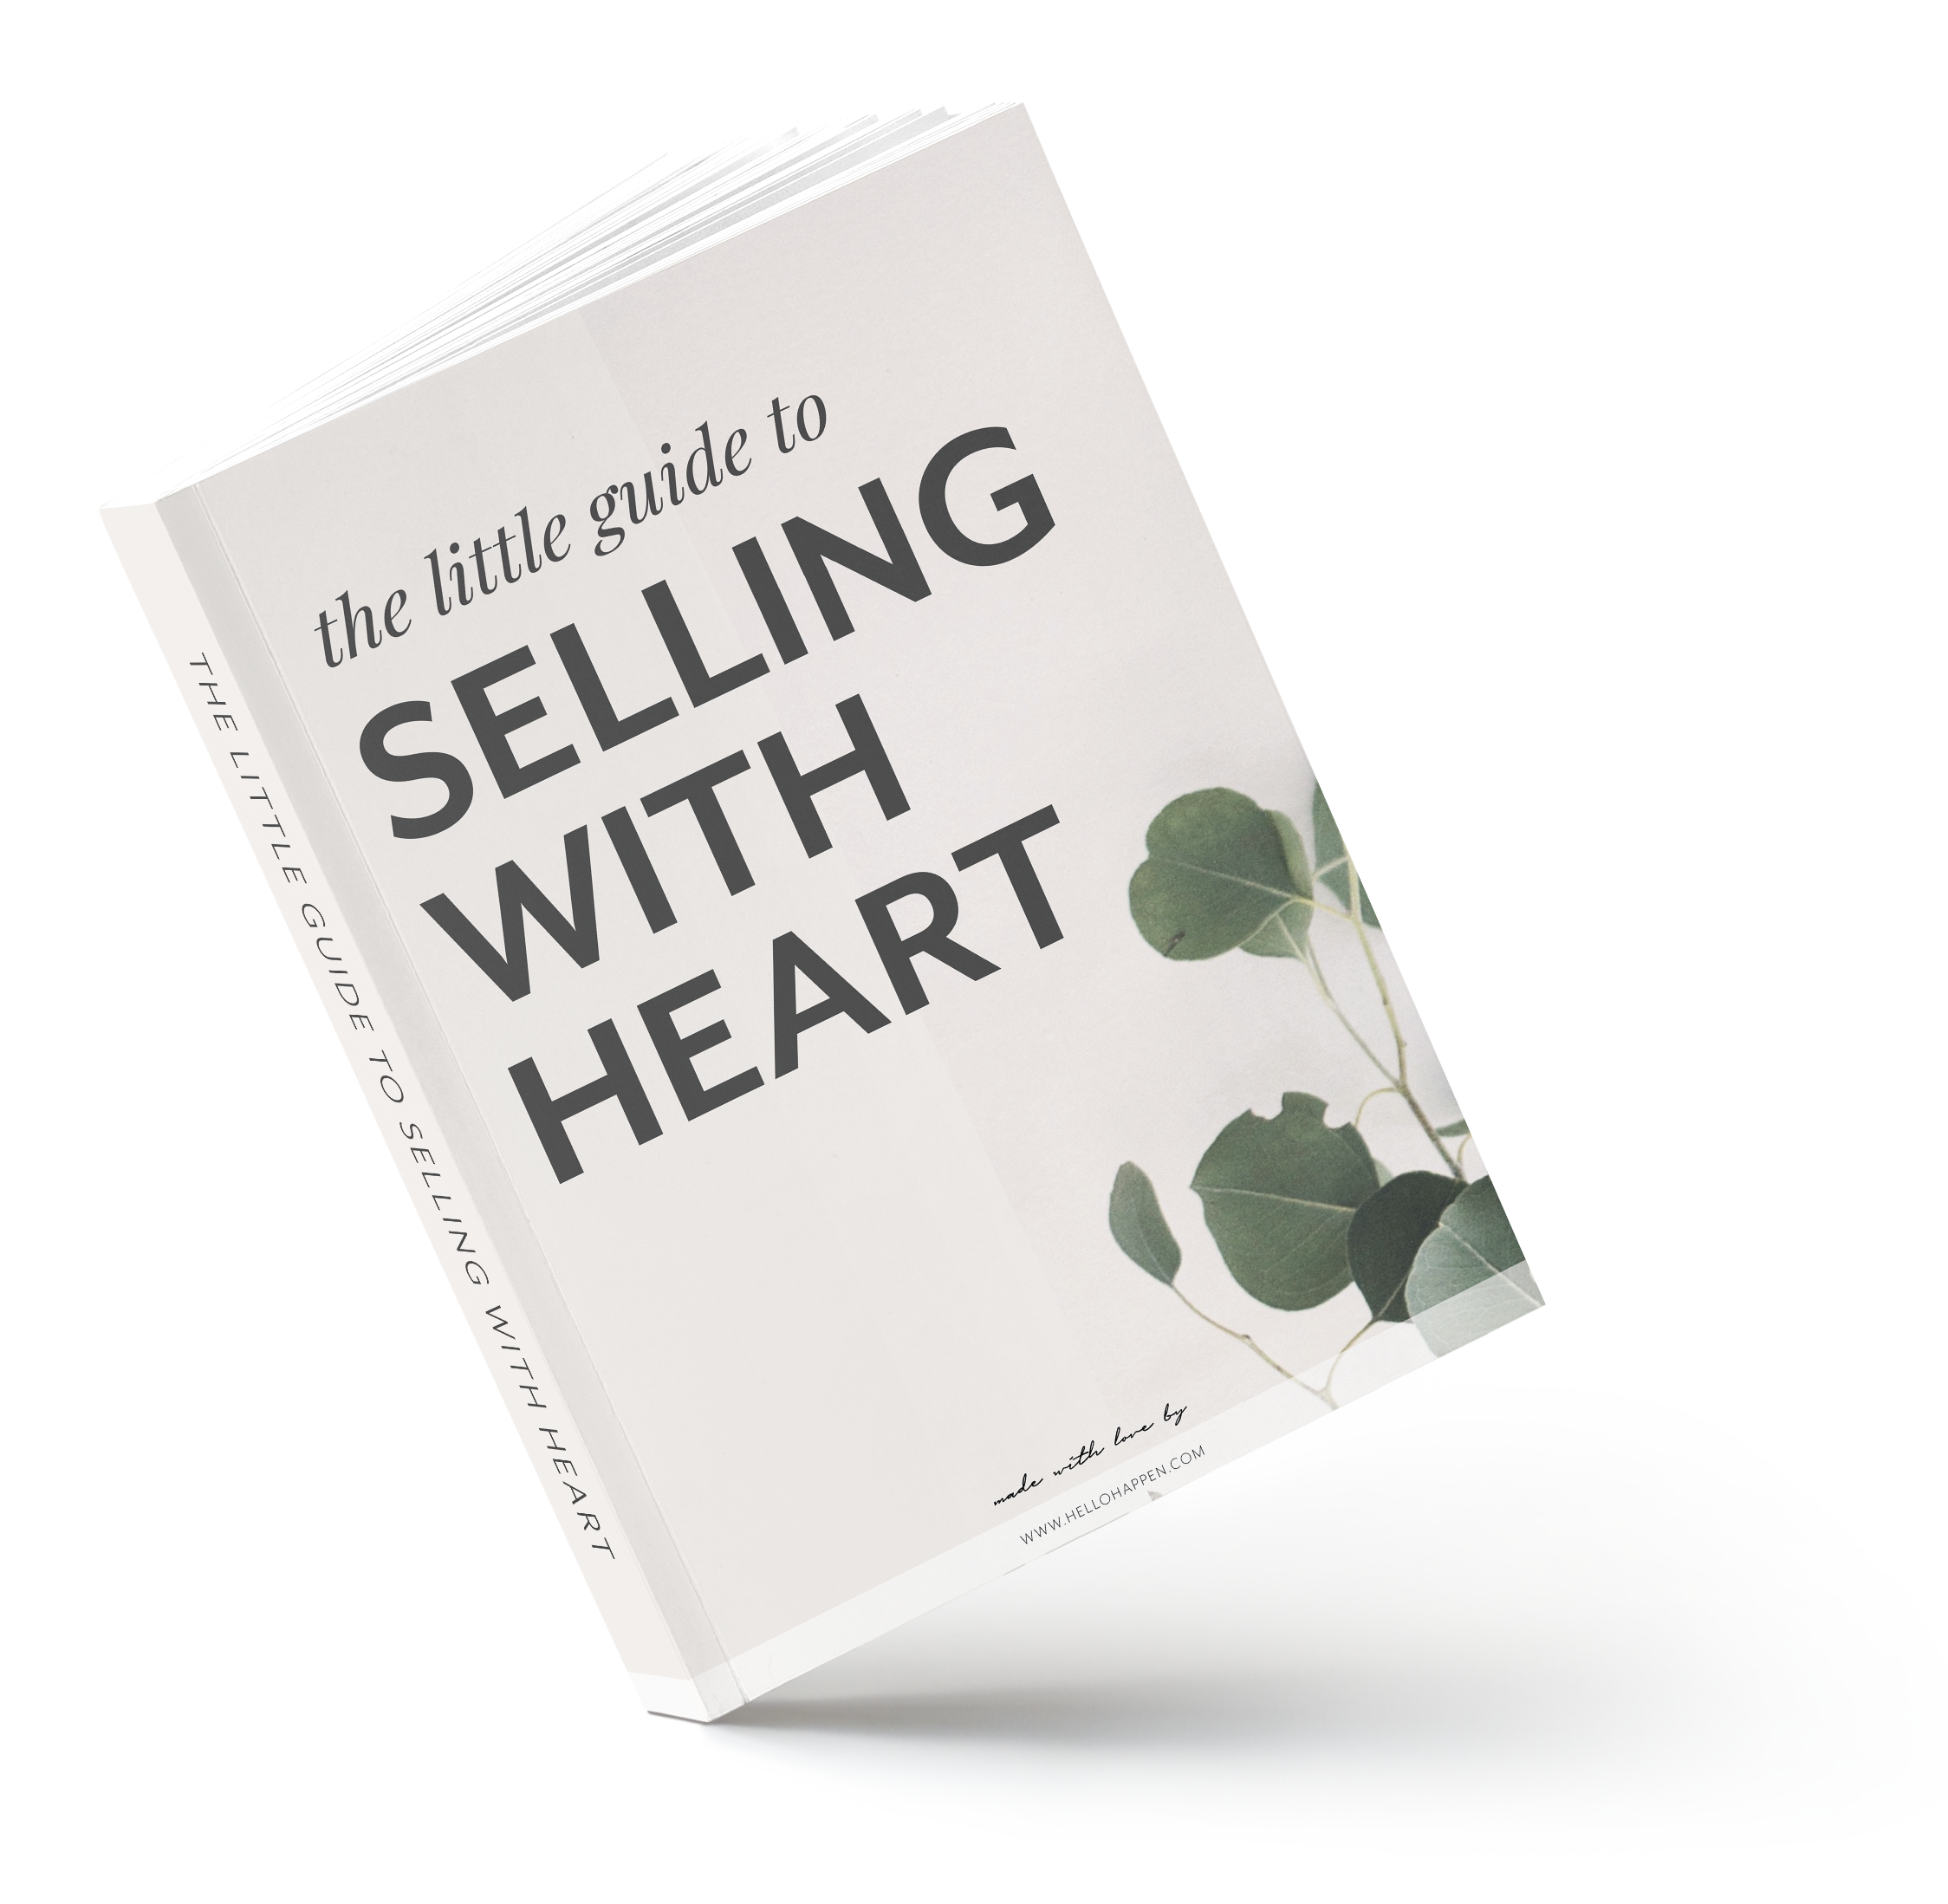 Little Guide to Selling with Heart